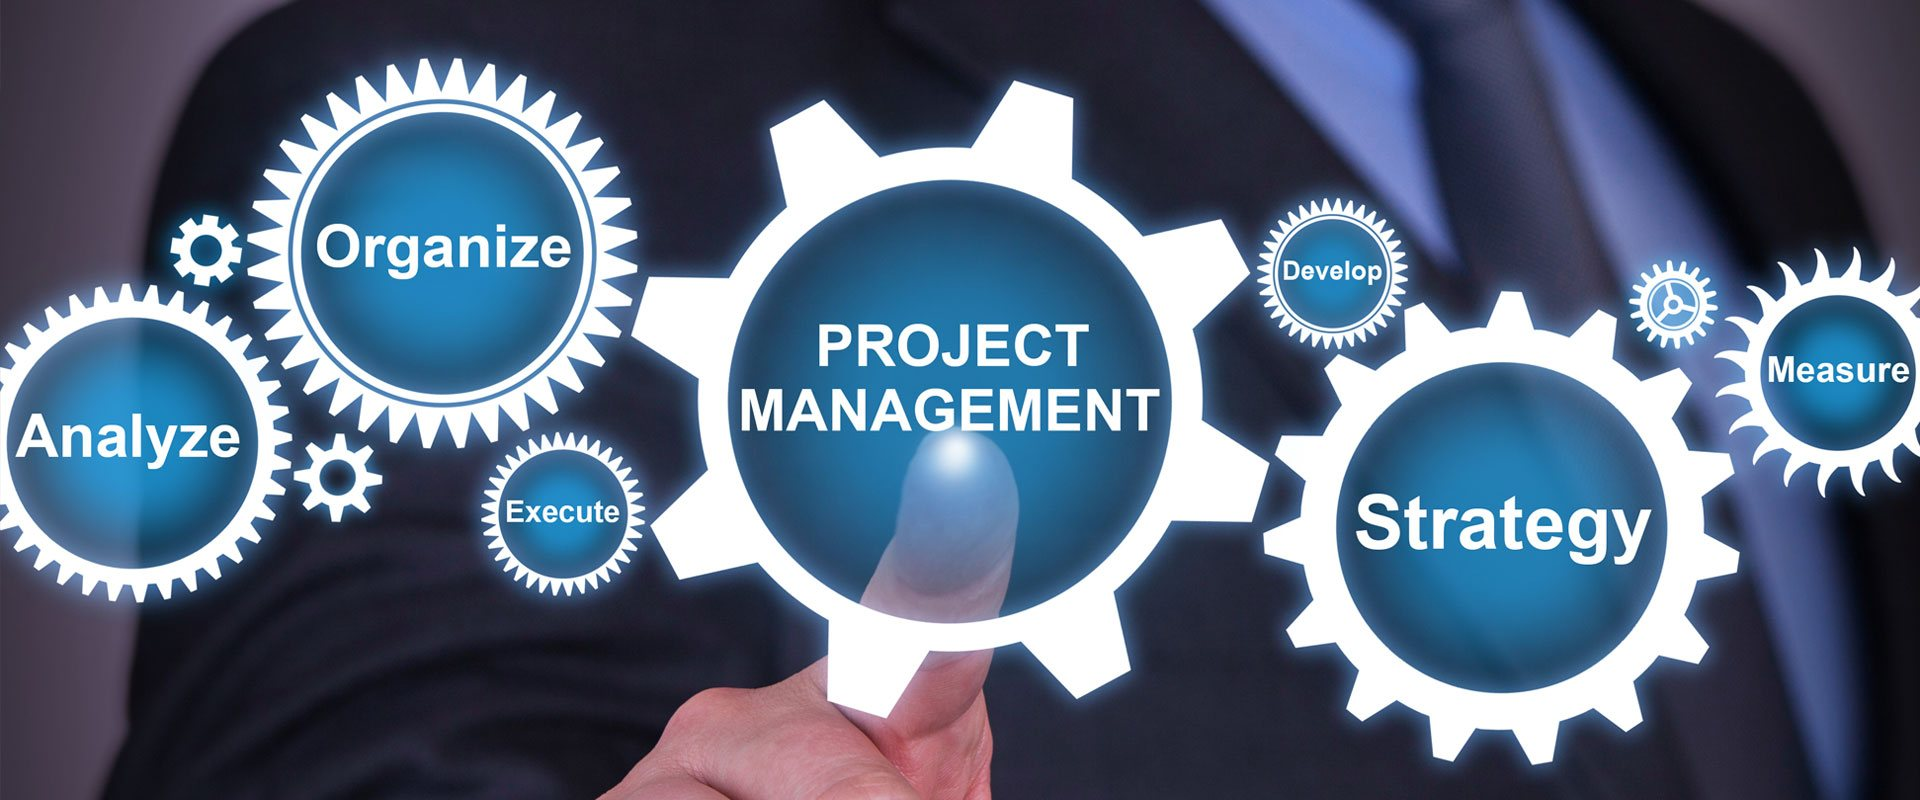 "A gear labeled ""Project Management"". For support REW Computing offers services in project management, as well as eDiscovery and IBM Lotus Notes support for Newmarket, Toronto, the GTA, and Ontario, Canada."